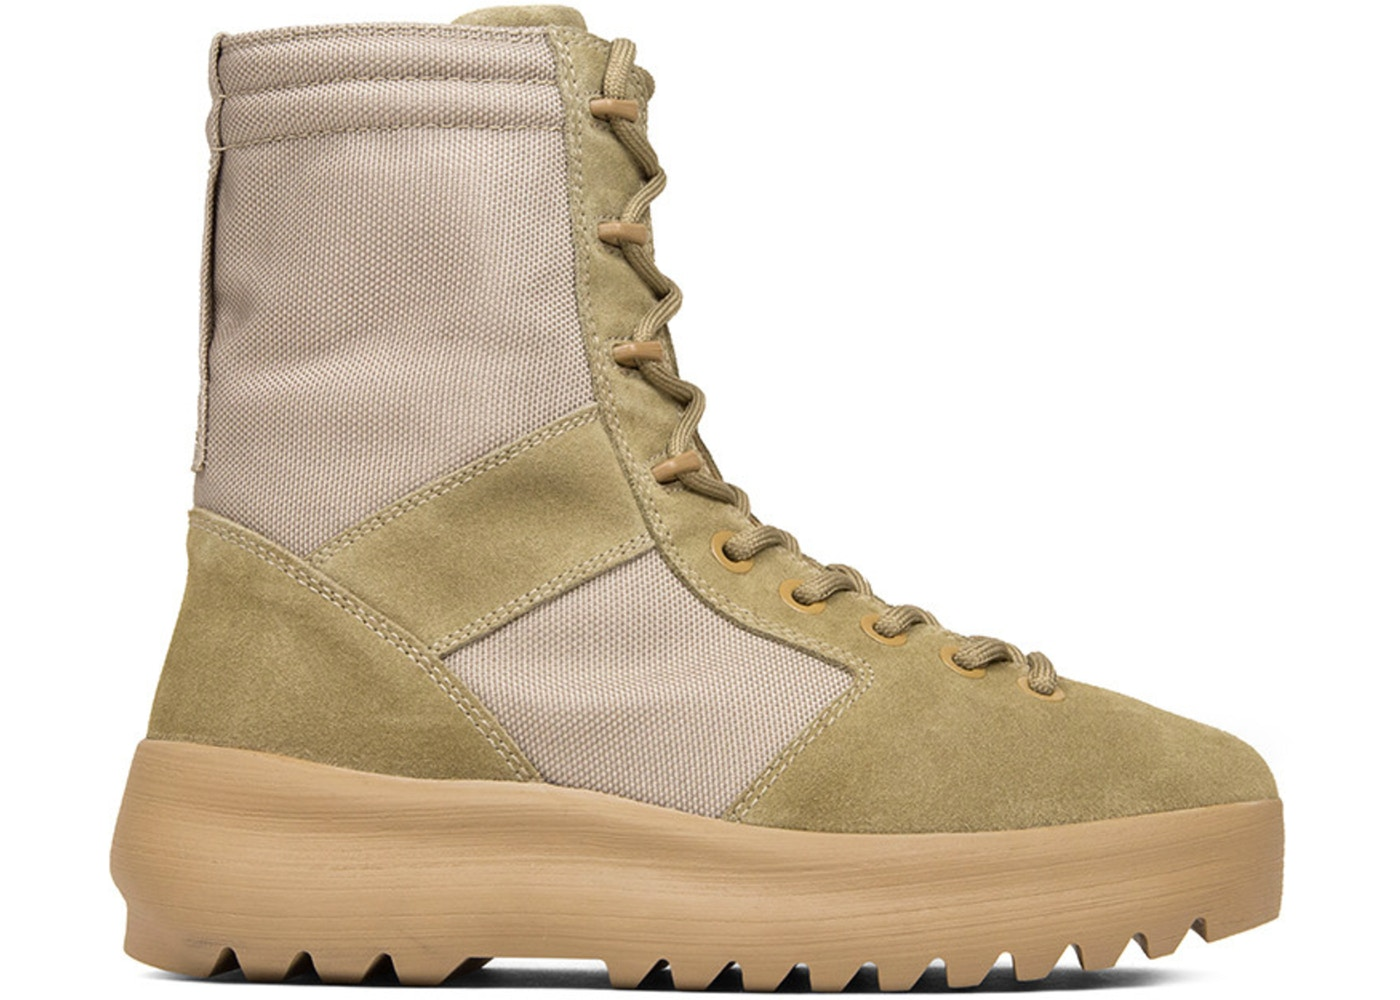 612186a5a Yeezy Military Boot Rock - KM2606.011